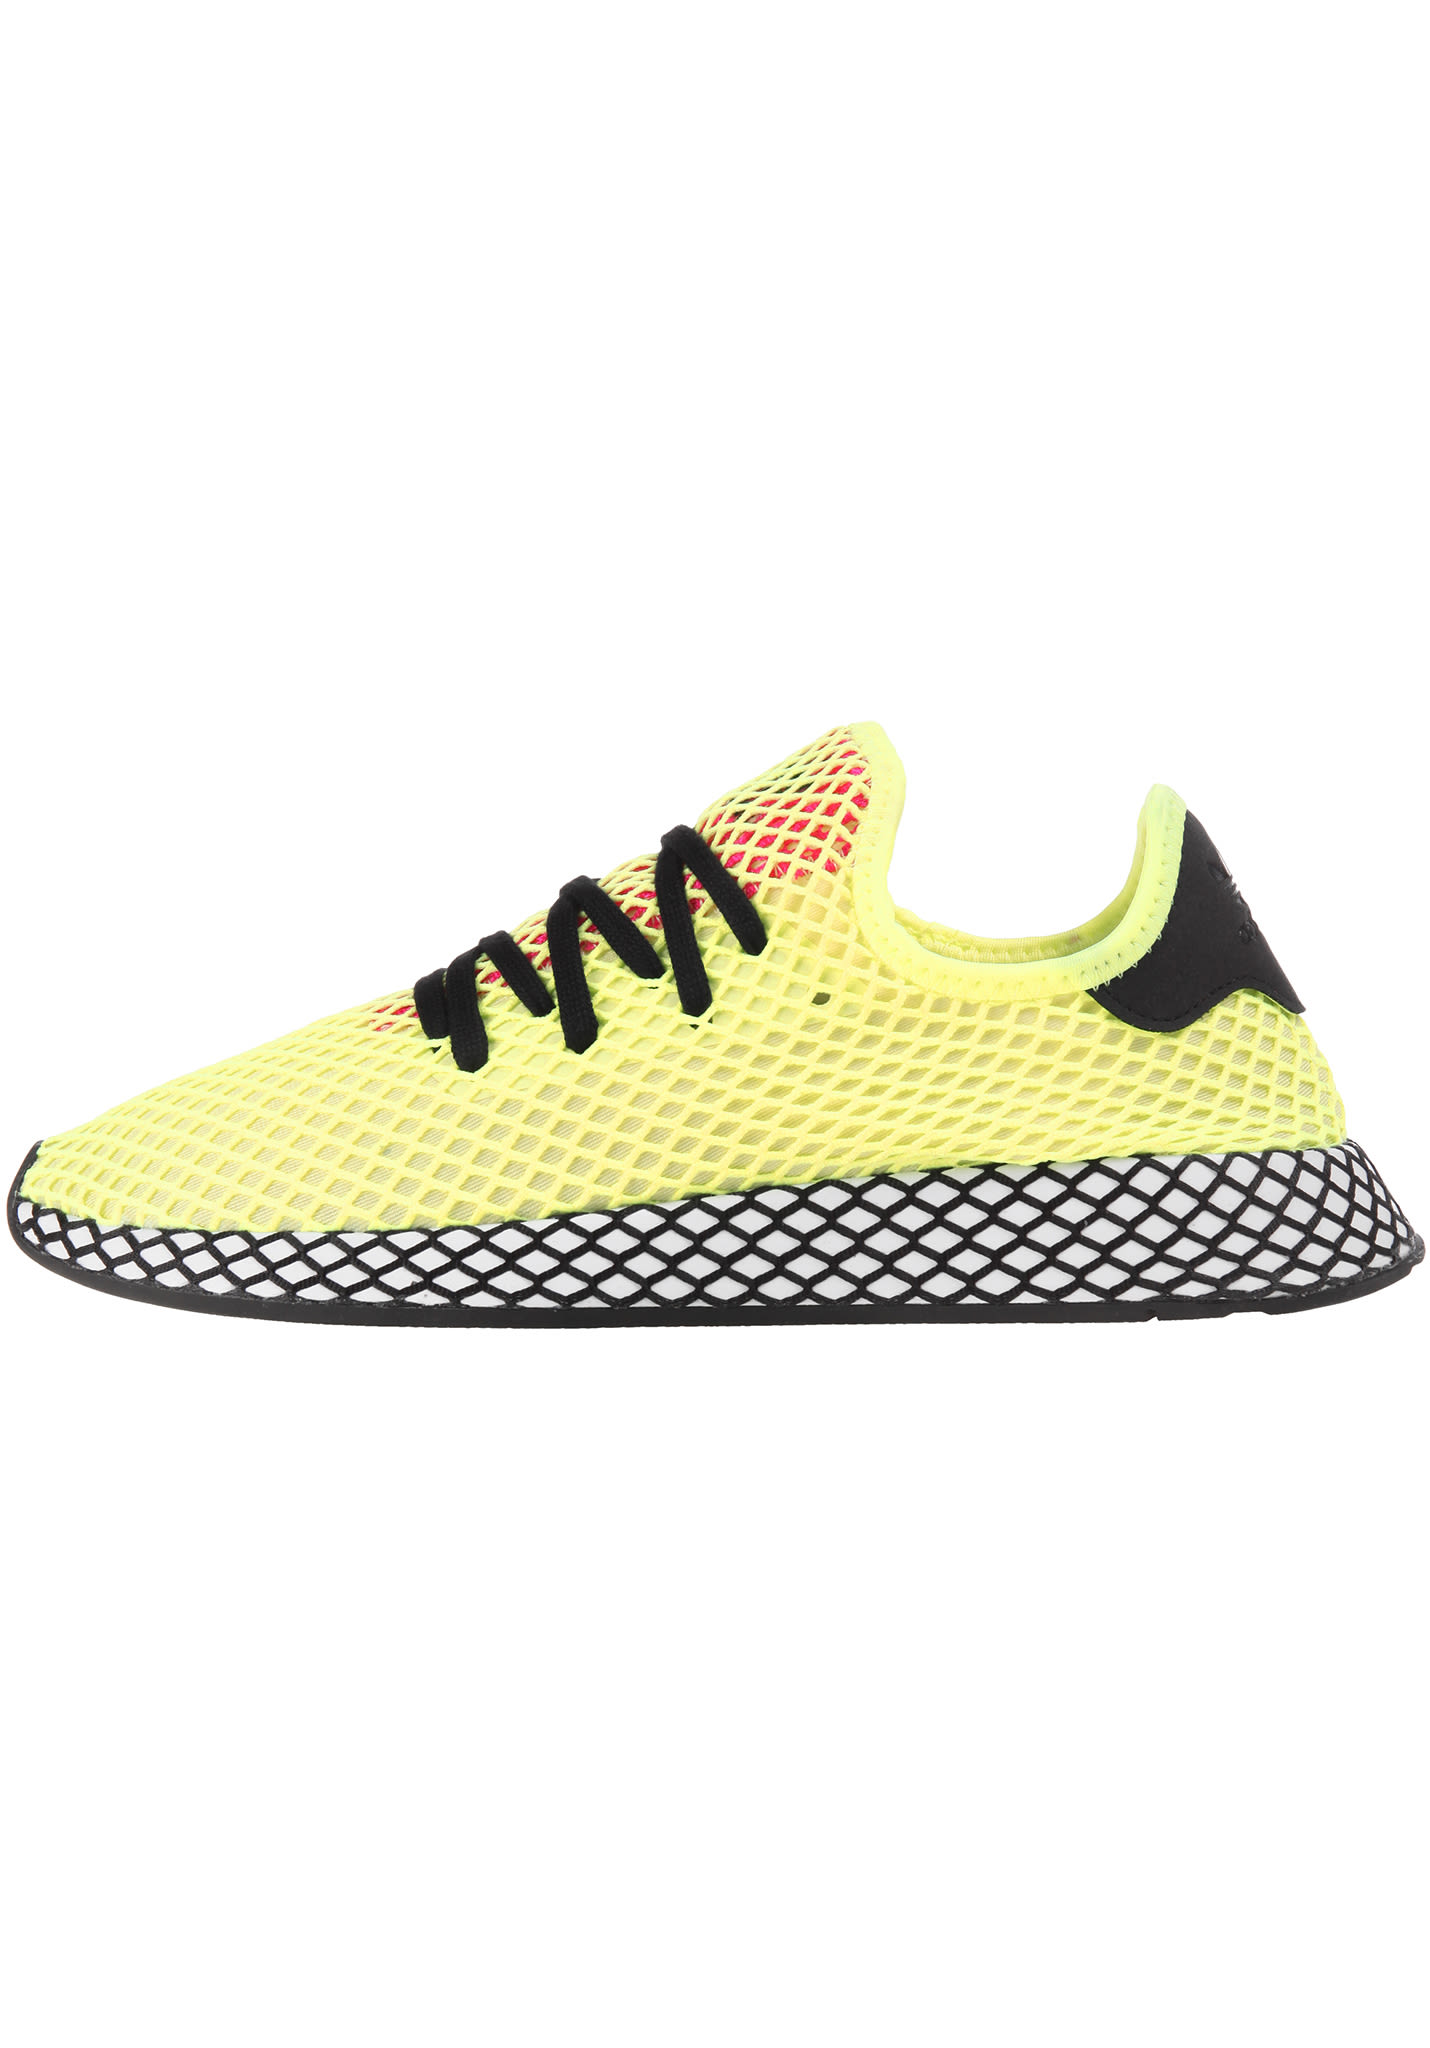 low priced 76b5e efd02 ADIDAS ORIGINALS Deerupt Runner - Sneakers for Men - Yellow - Planet Sports